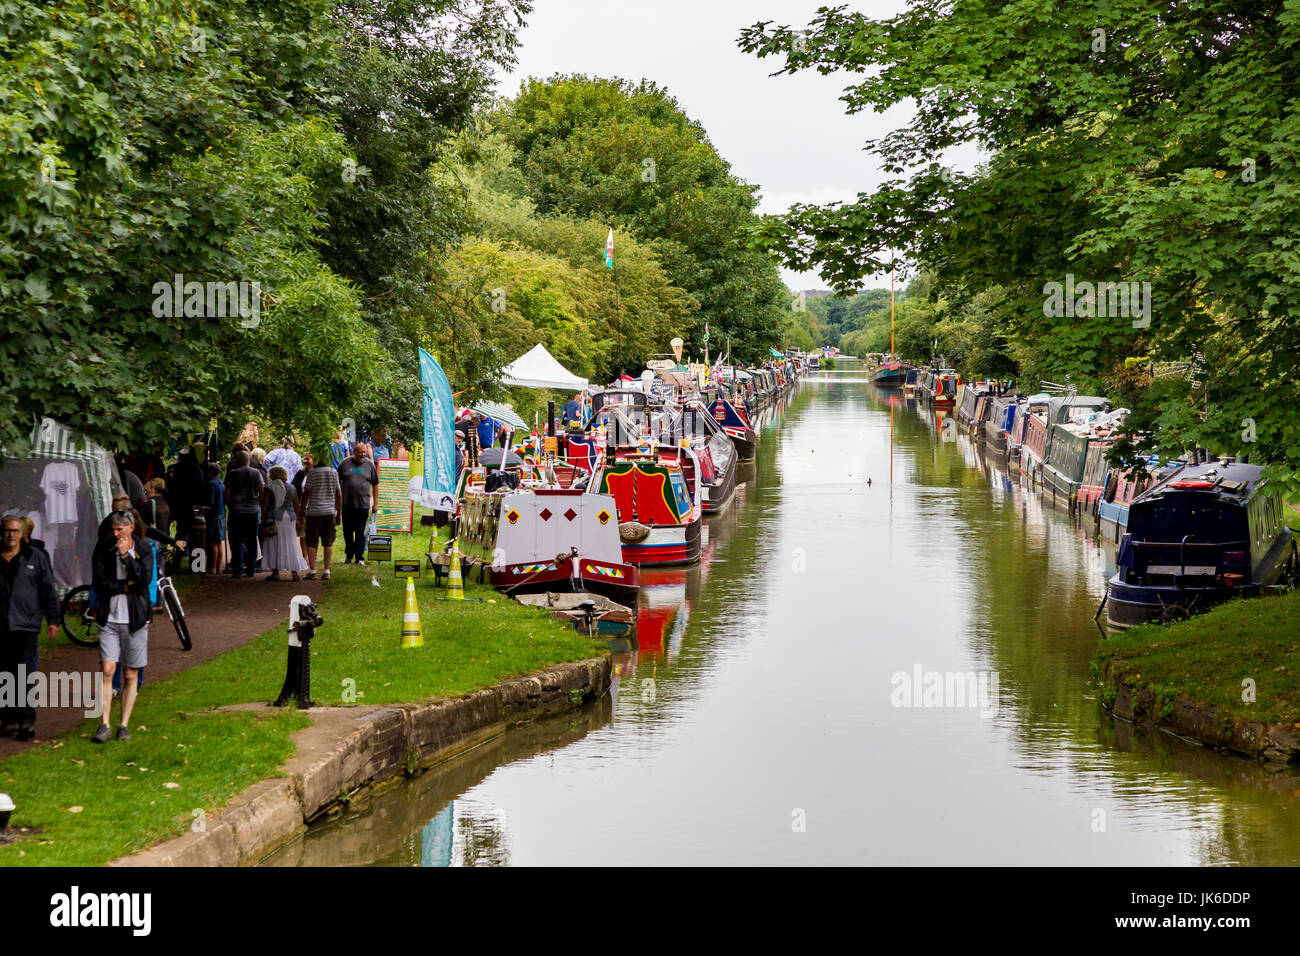 Cosgrove, North Buckinghamshire, U.K. 22nd July 2017.  Buckingham Canal Society annual Canal Festival on the Grand - Stock Image